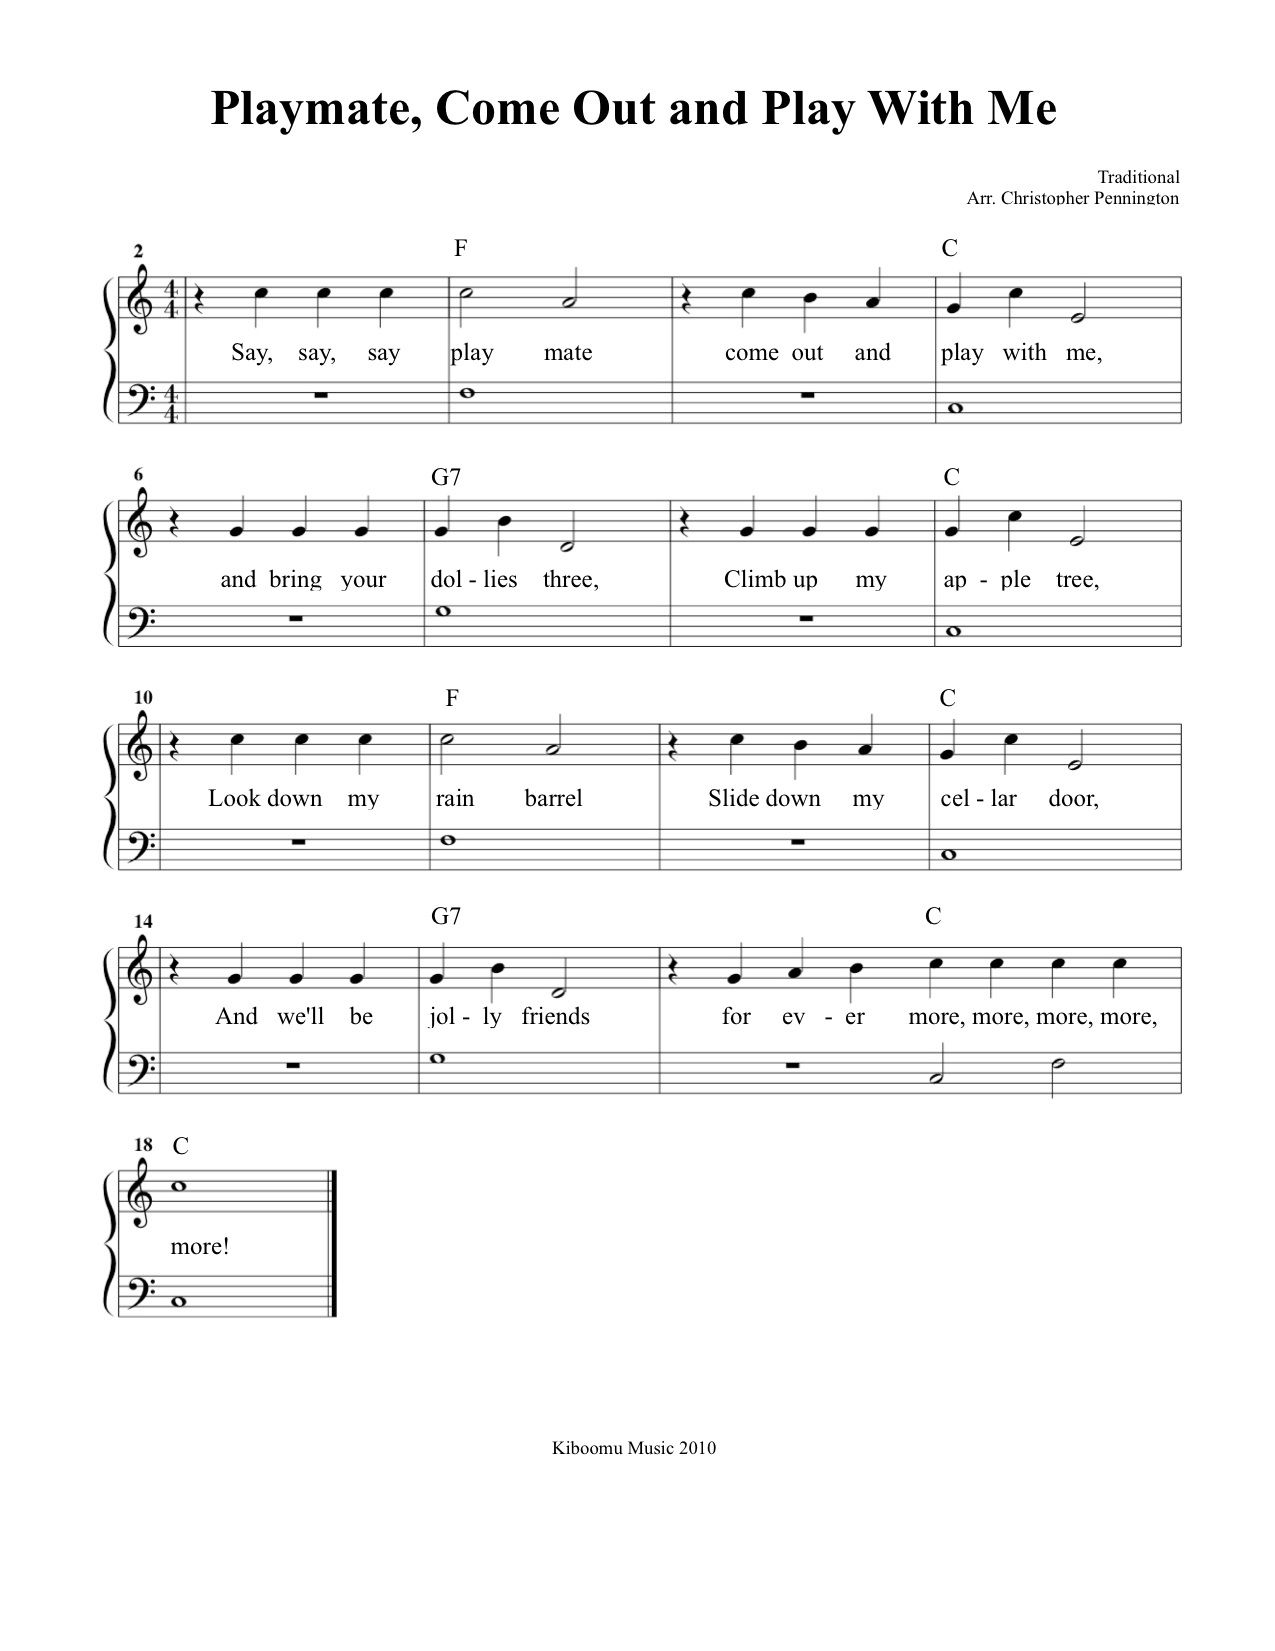 Playmate Come Out And Play With Me Sheet Music